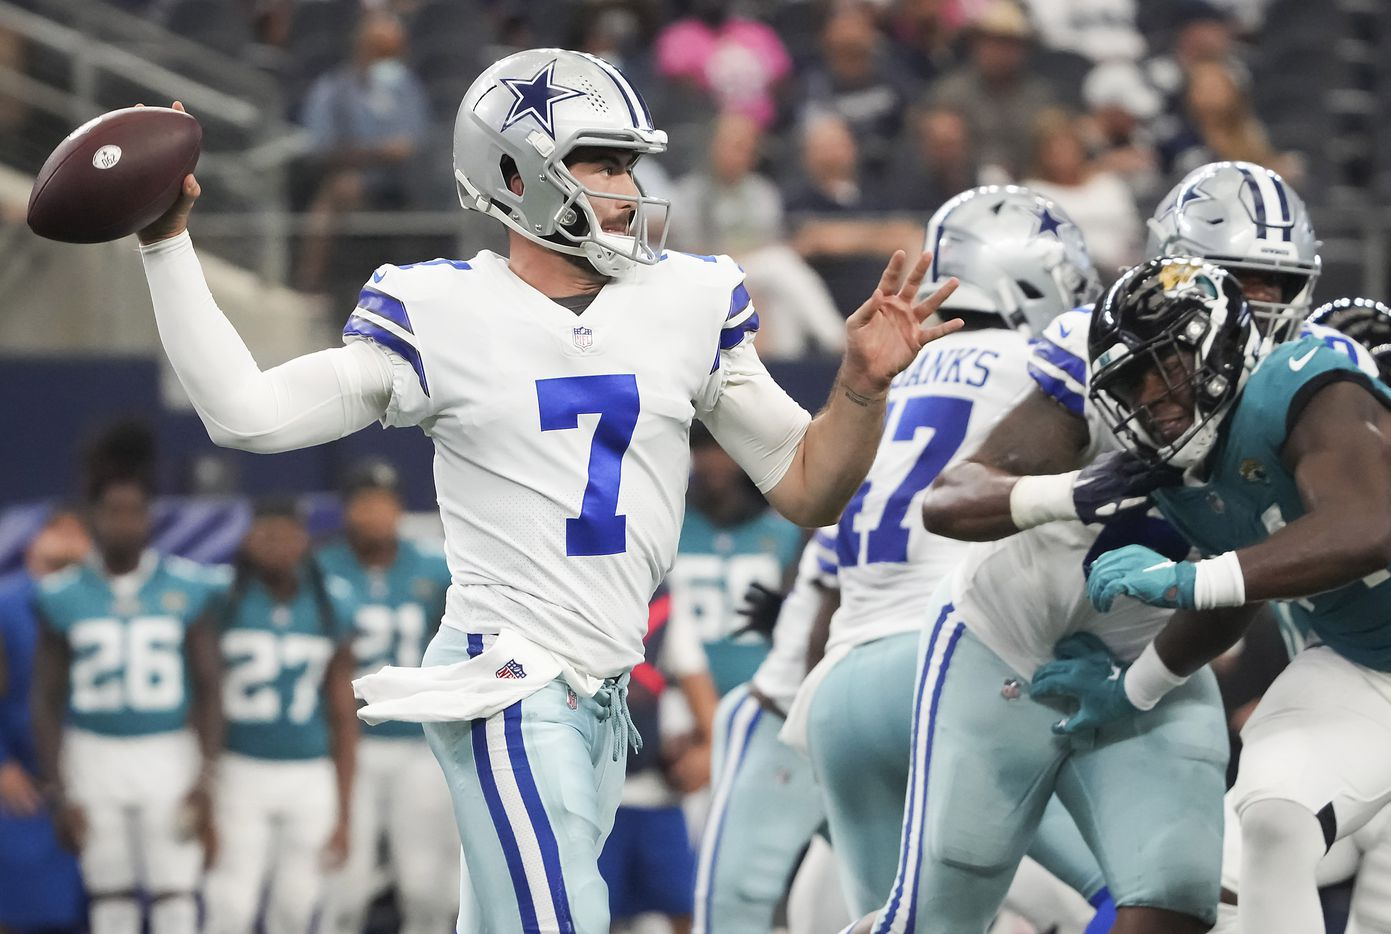 Dallas Cowboys quarterback Ben DiNucci (7) throws a pass during the second half of a preseason NFL football game against the Jacksonville Jaguars at AT&T Stadium on Sunday, Aug. 29, 2021, in Arlington. (Smiley N. Pool/The Dallas Morning News)